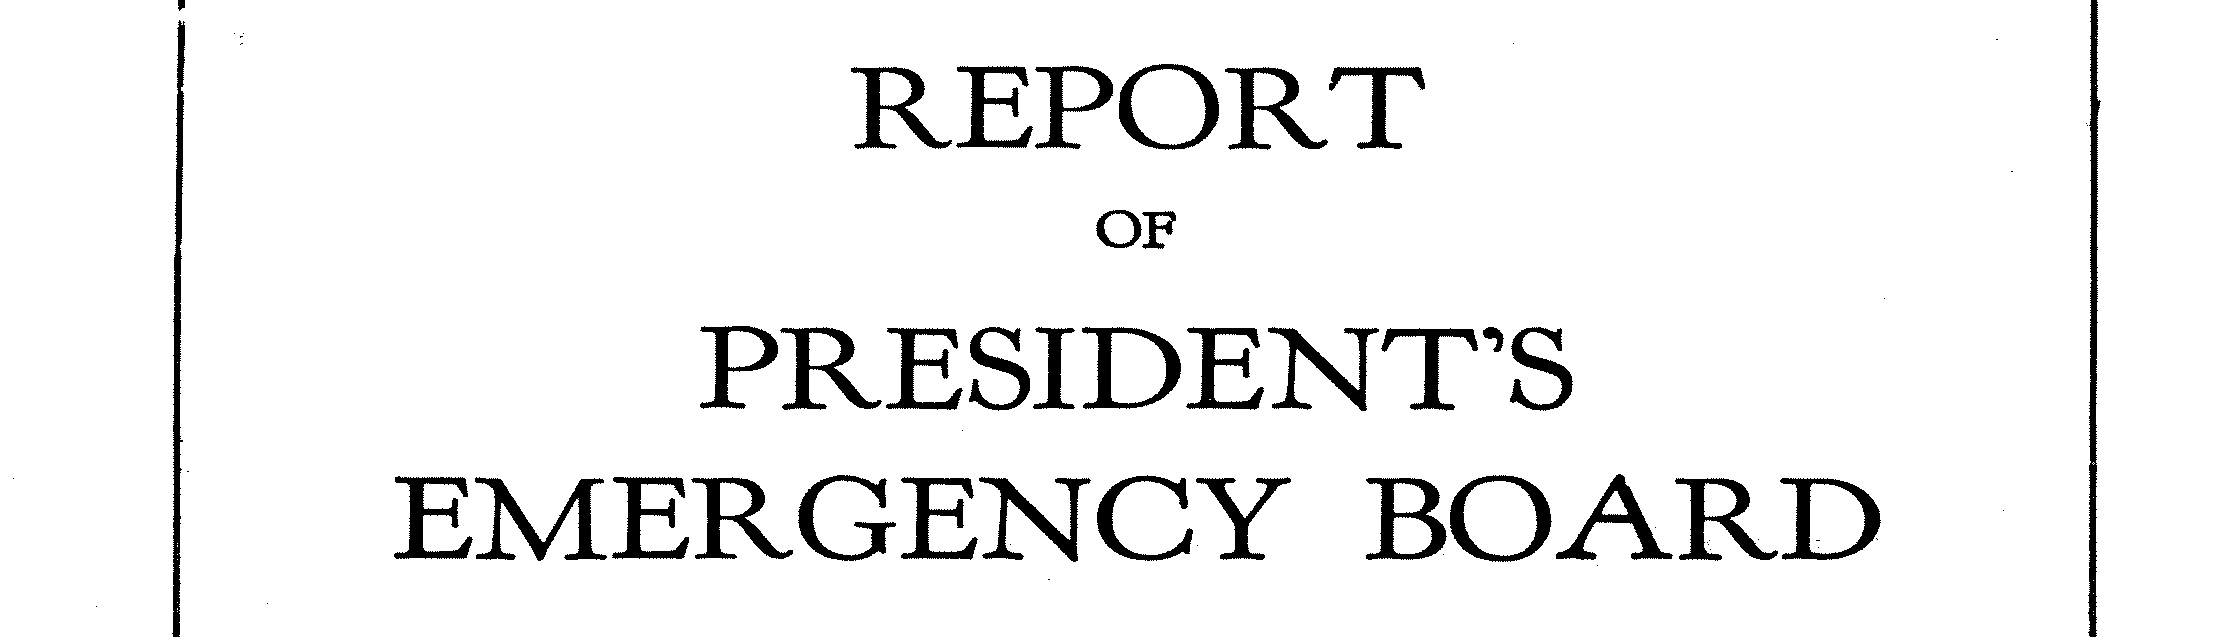 Records of the National Mediation Board